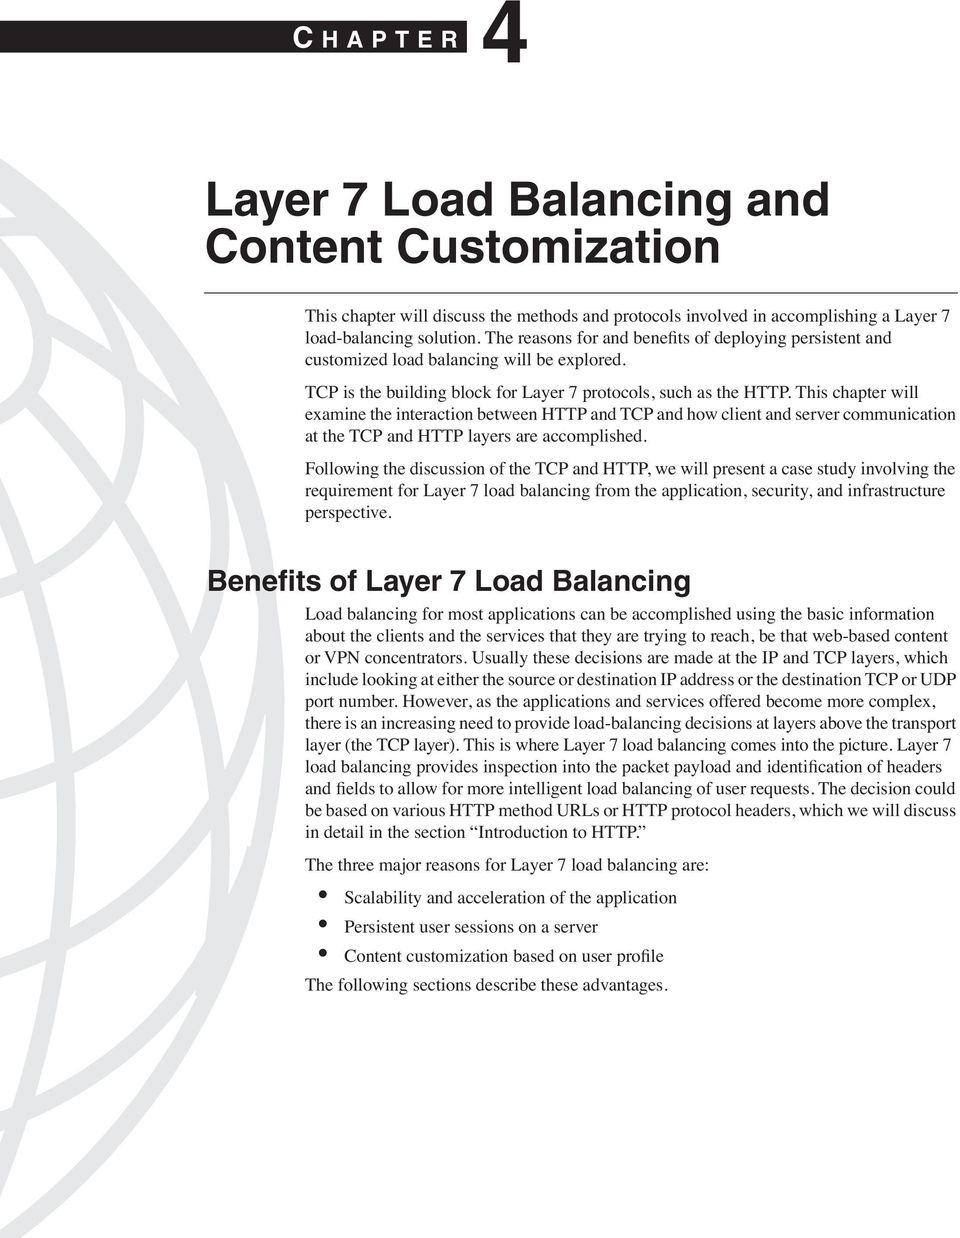 This chapter will examine the interaction between HTTP and TCP and how client and server communication at the TCP and HTTP layers are accomplished.